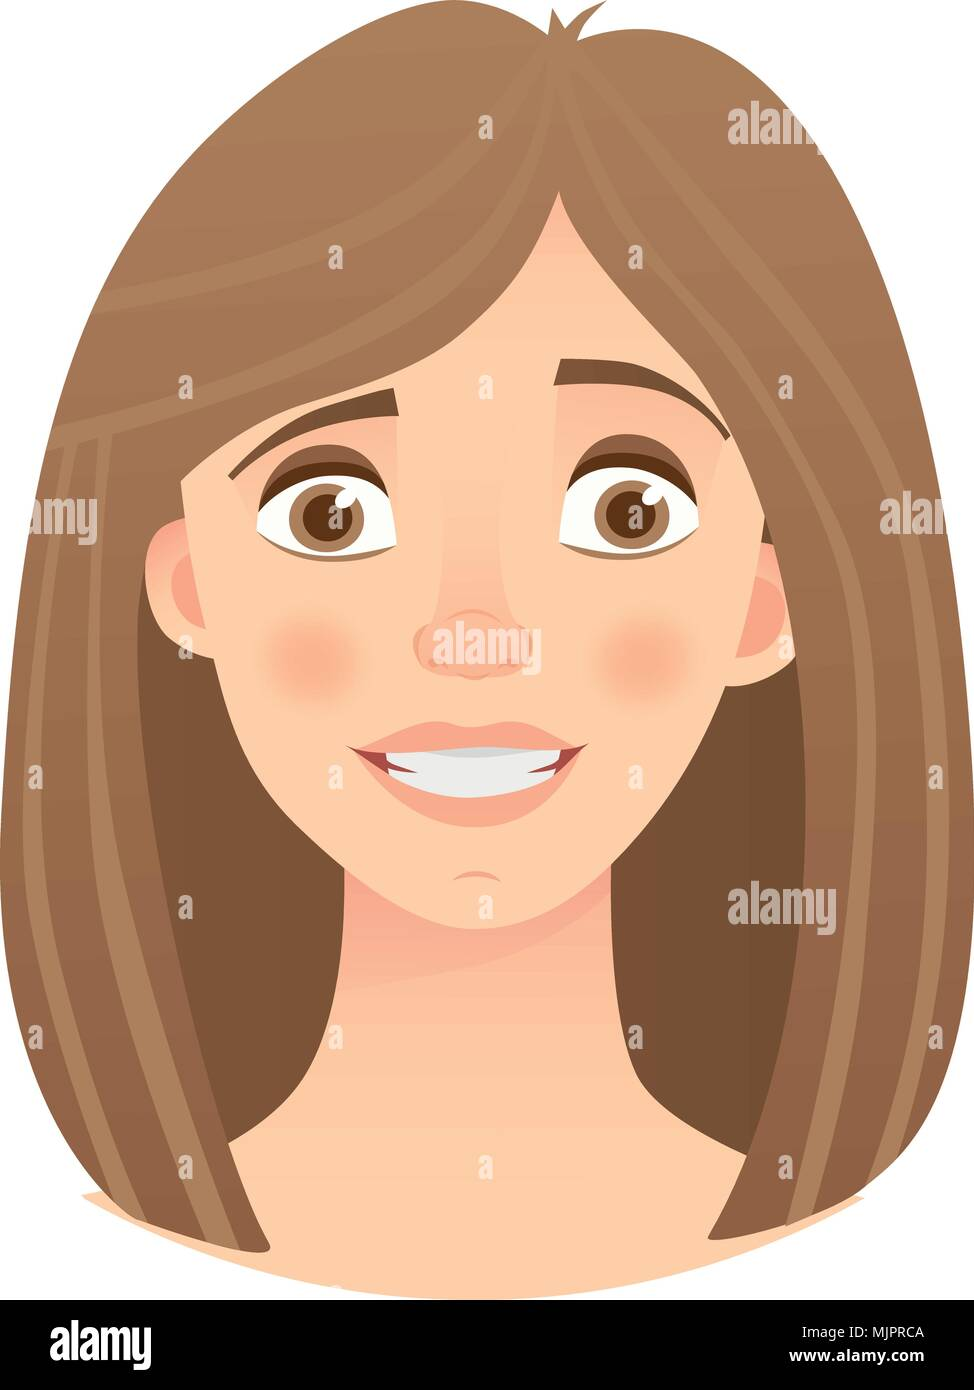 emotions of womans face - Stock Vector